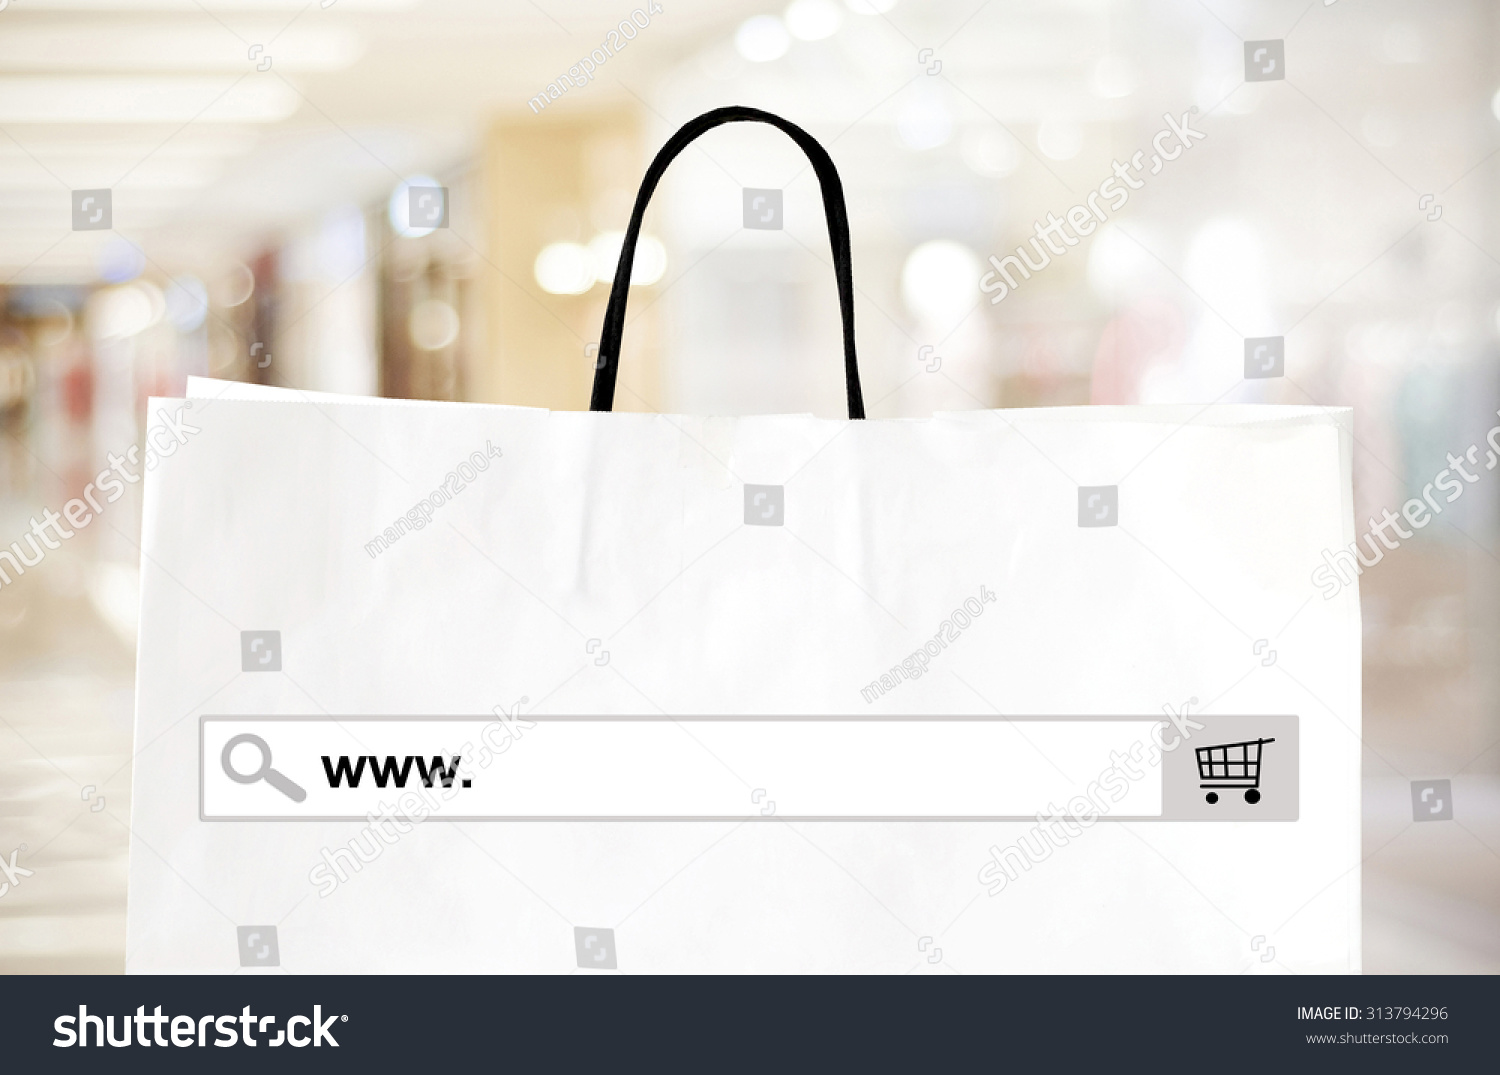 Word Written On Search Bar Over Stock Photo 313794296 - Shutterstock